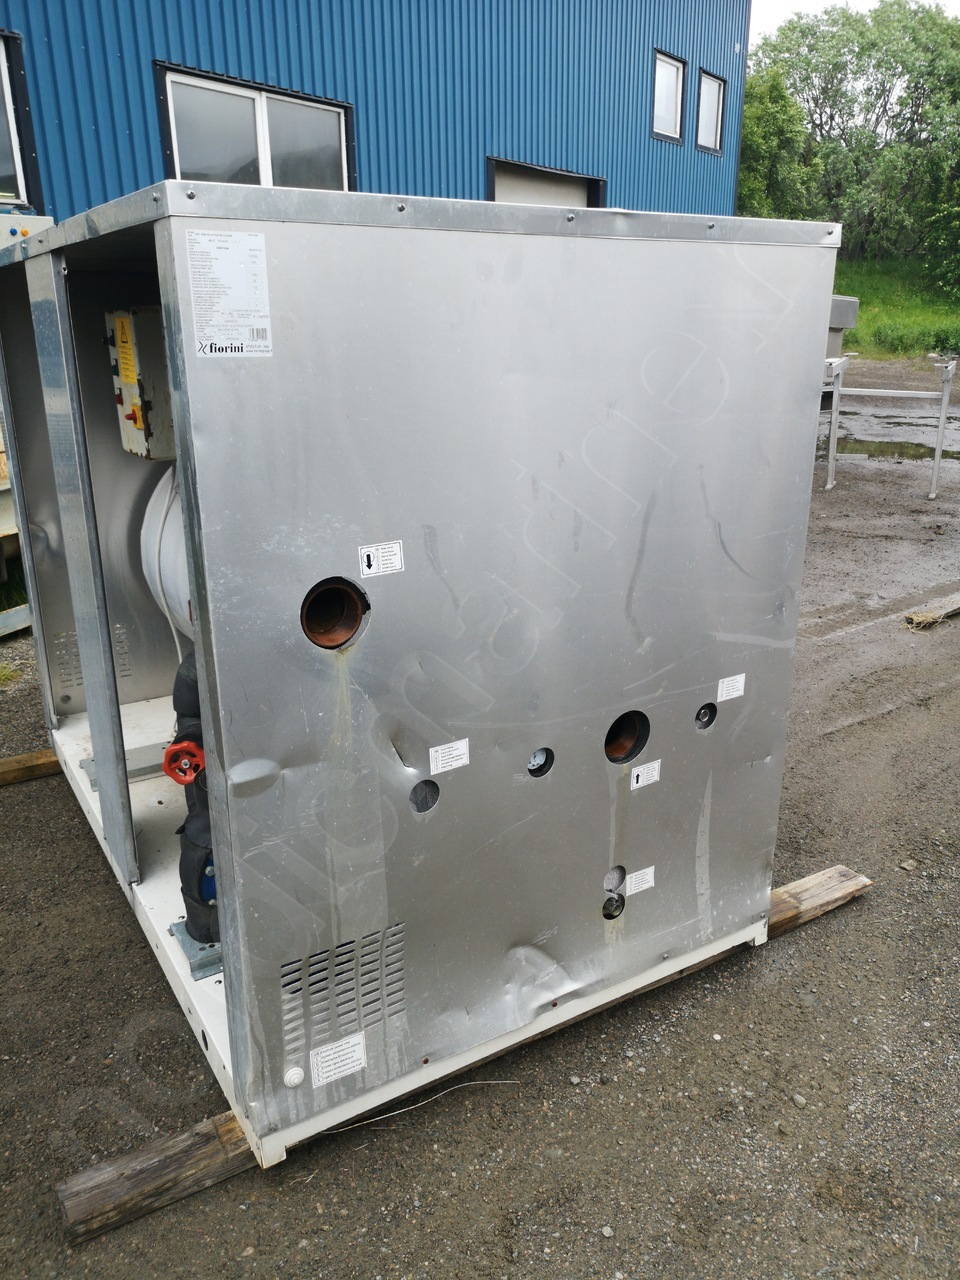 Fiorini inertial water storage unit